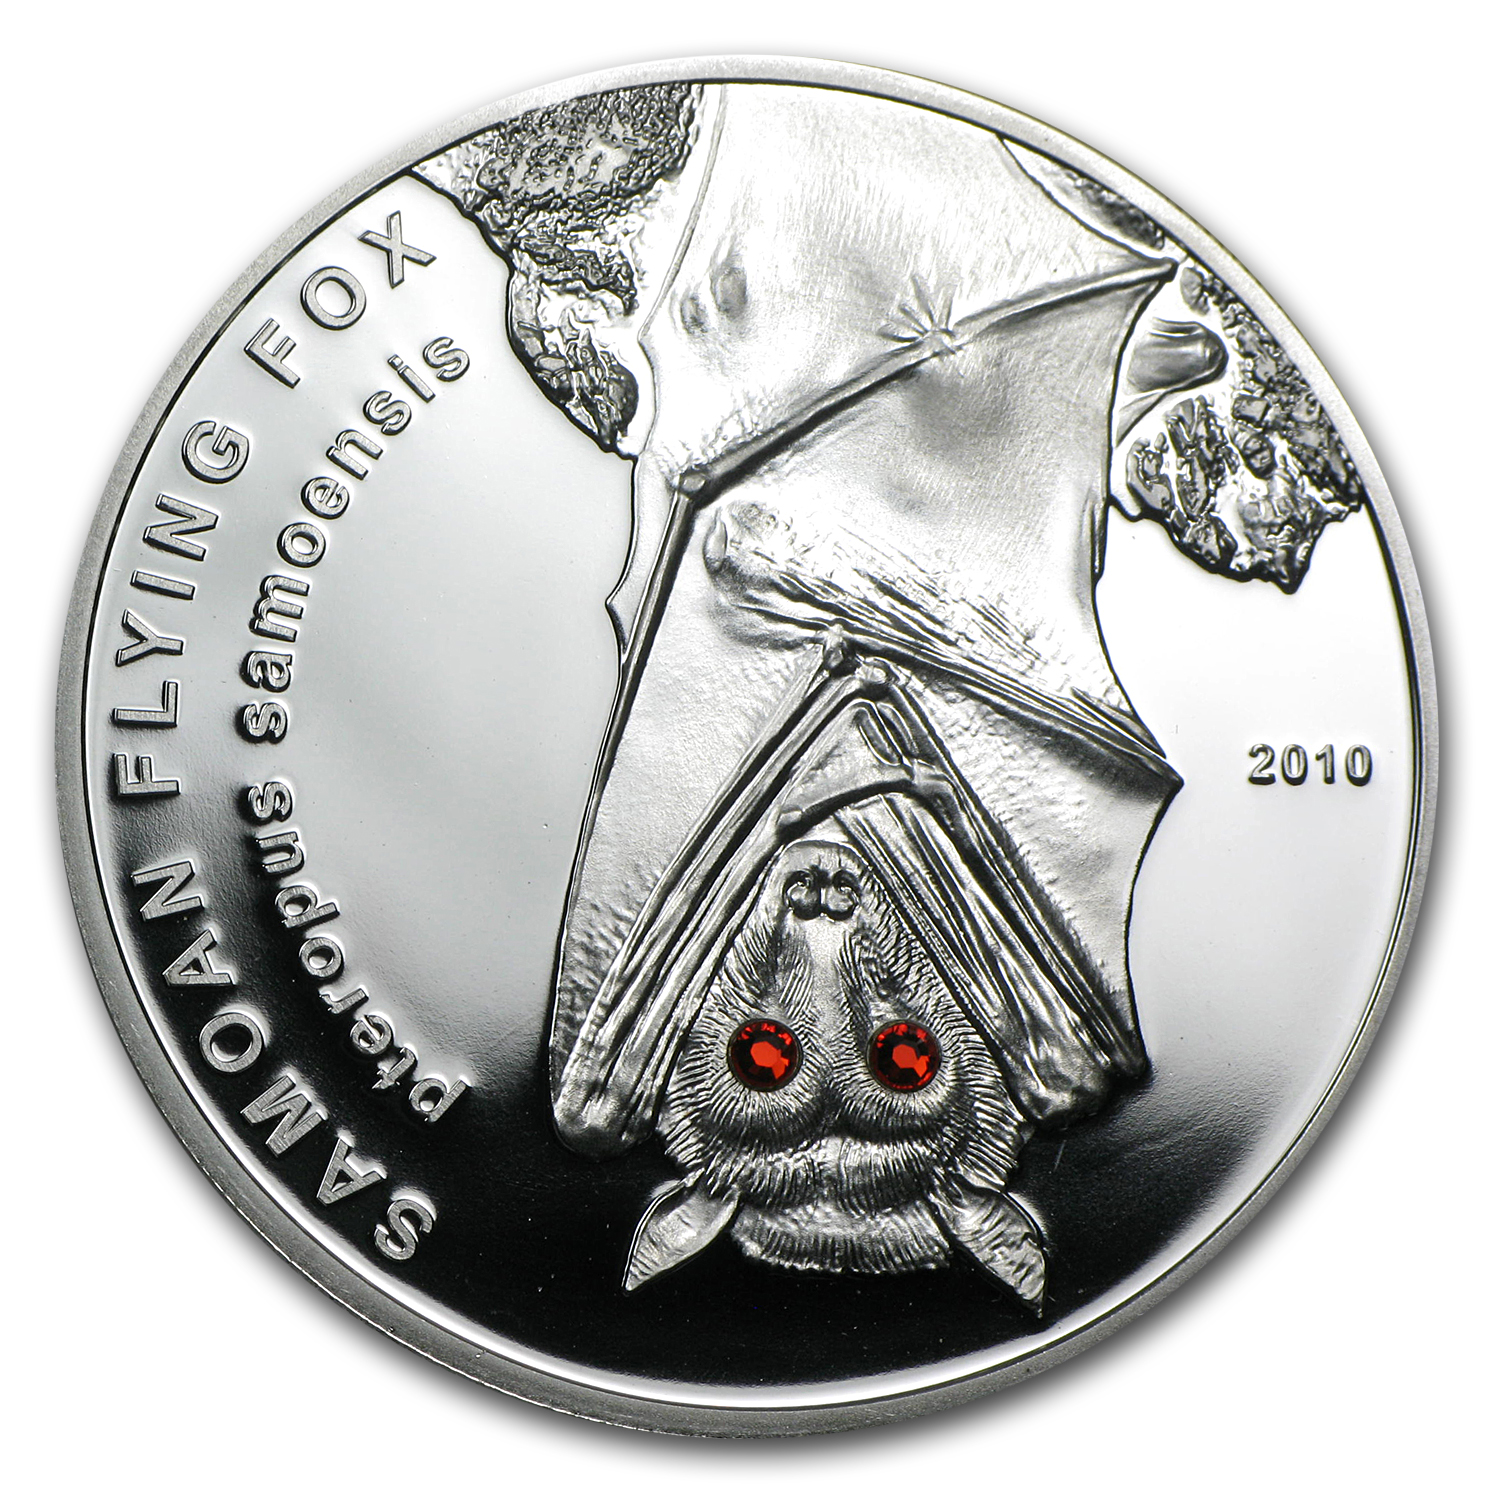 2010 Samoa Silver $10 Flying Fox Proof (w/Swarovski Crystals)